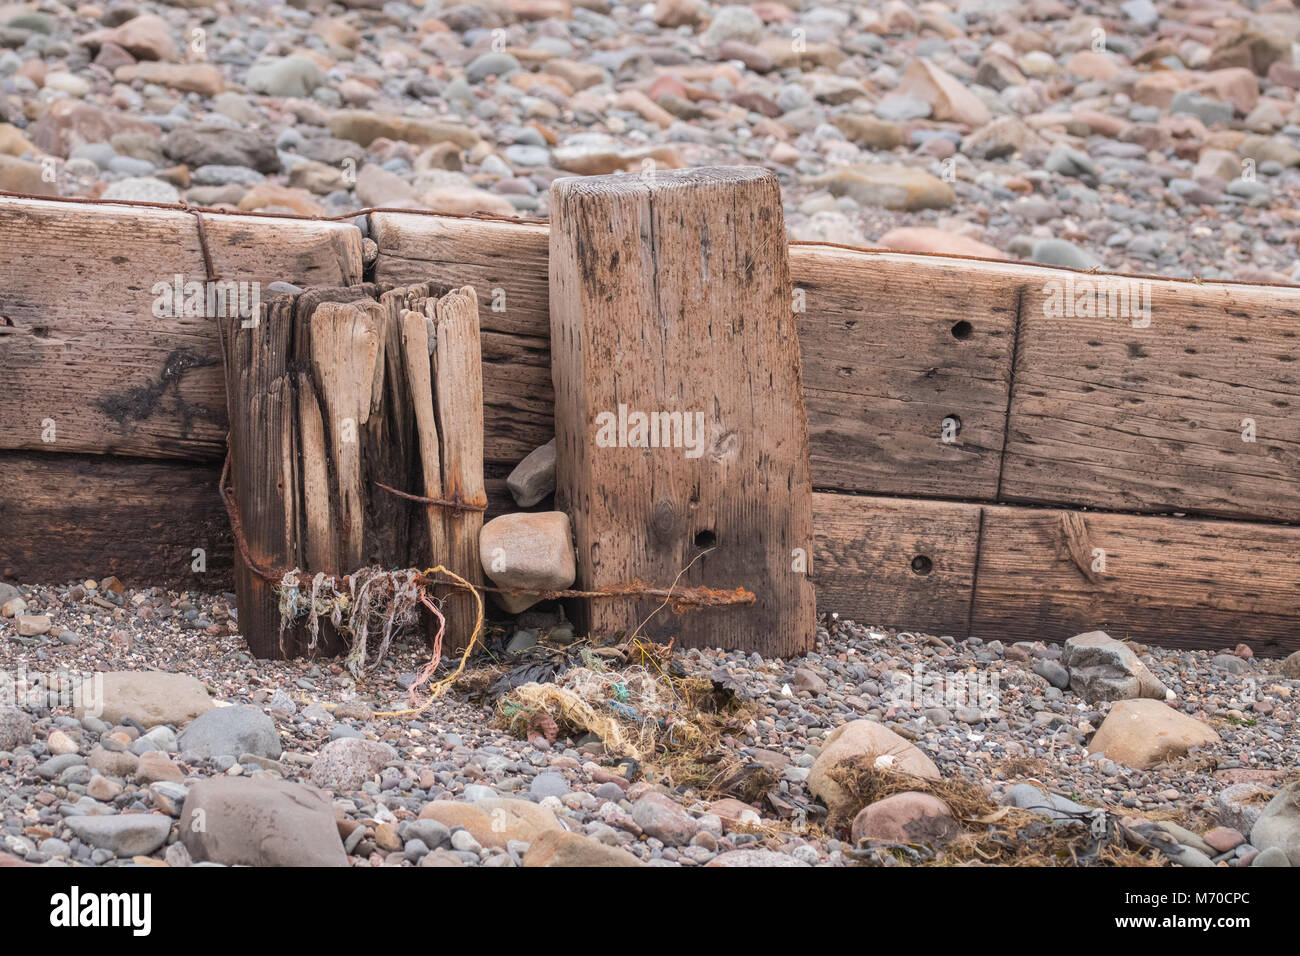 View showing part of a groyne on a beach with rocks and sand round about. Stock Photo